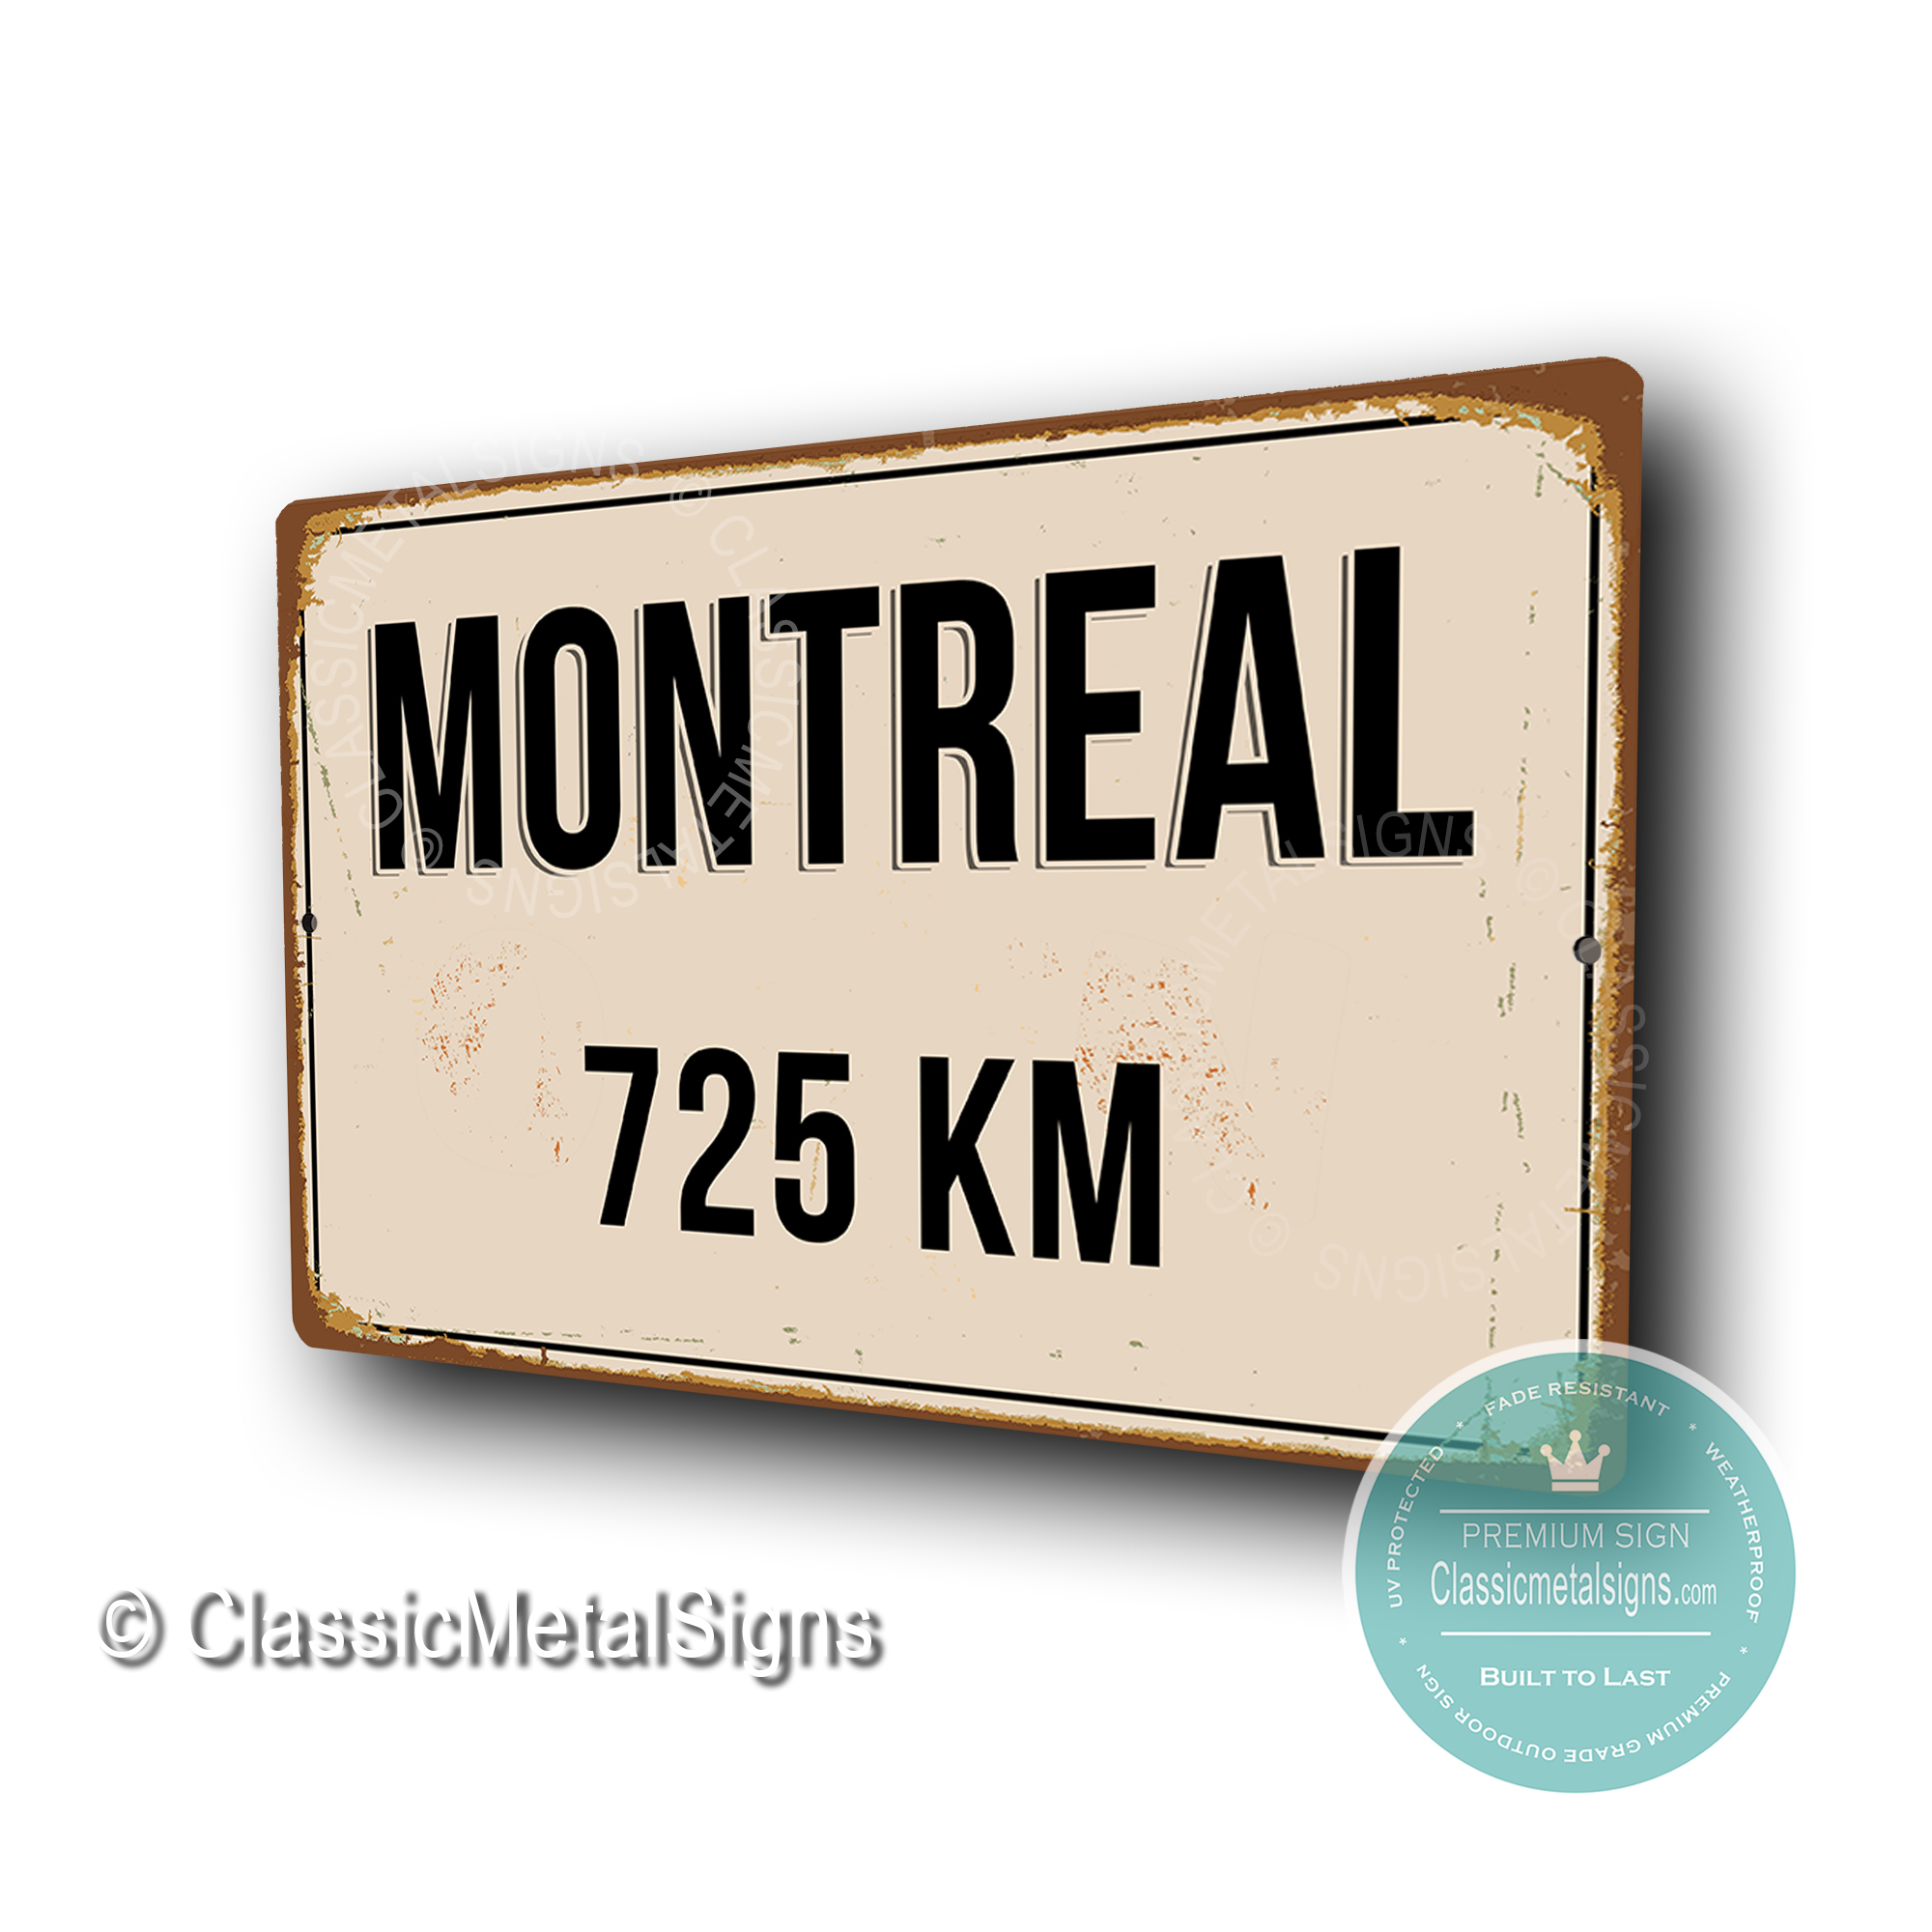 Montreal Street Signs